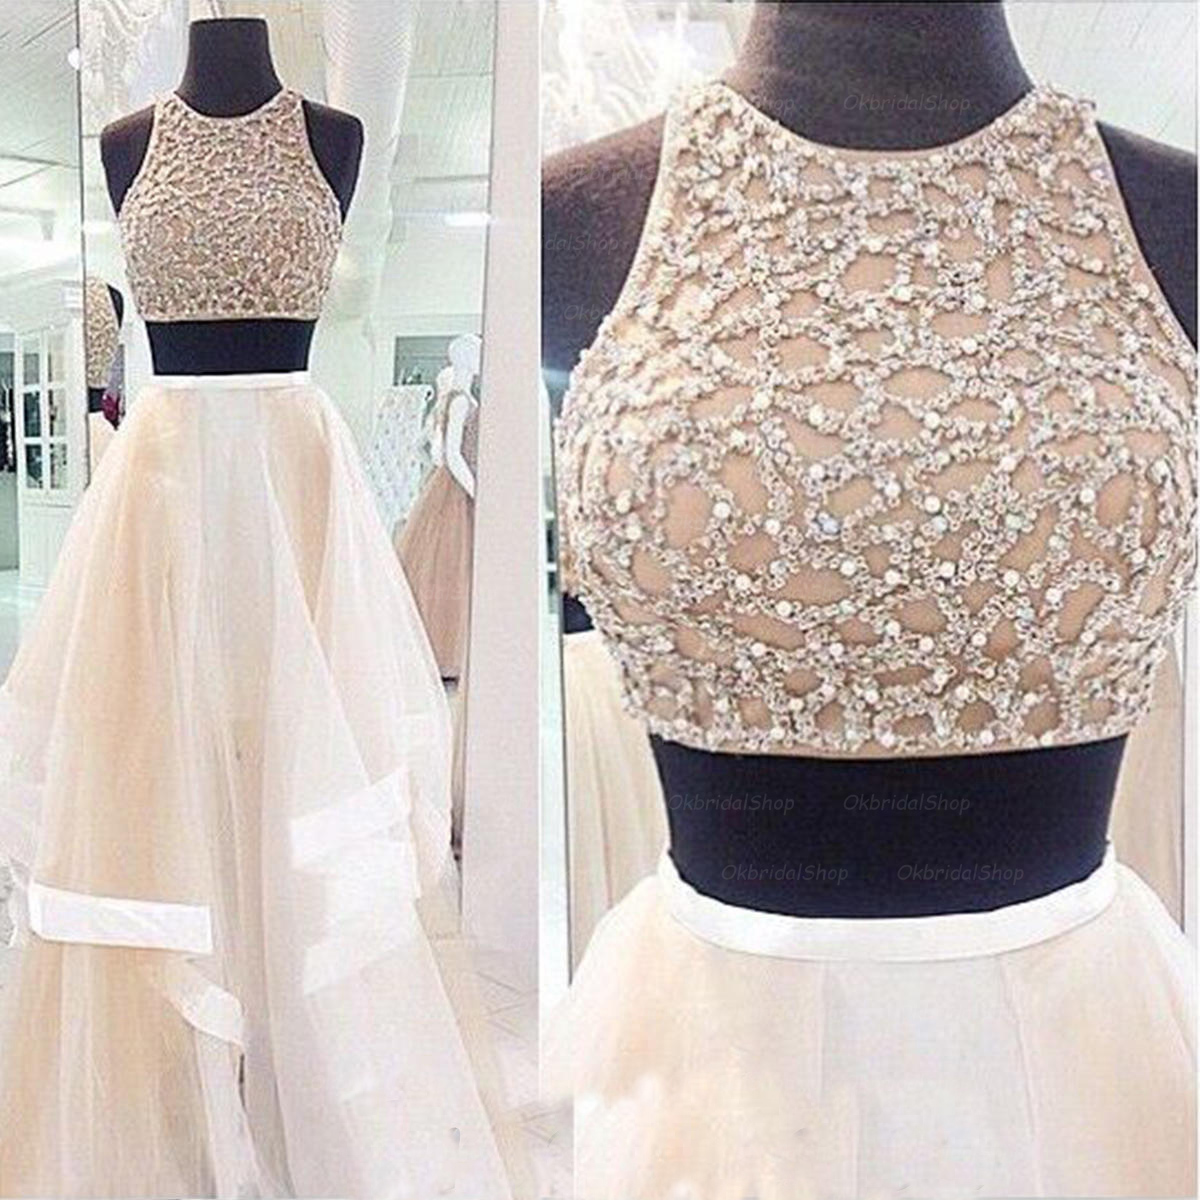 6e091d0c408fb Ulass Charming Prom Dress,Sexy 2 Piece Style Prom Dress,A-Line Prom ...